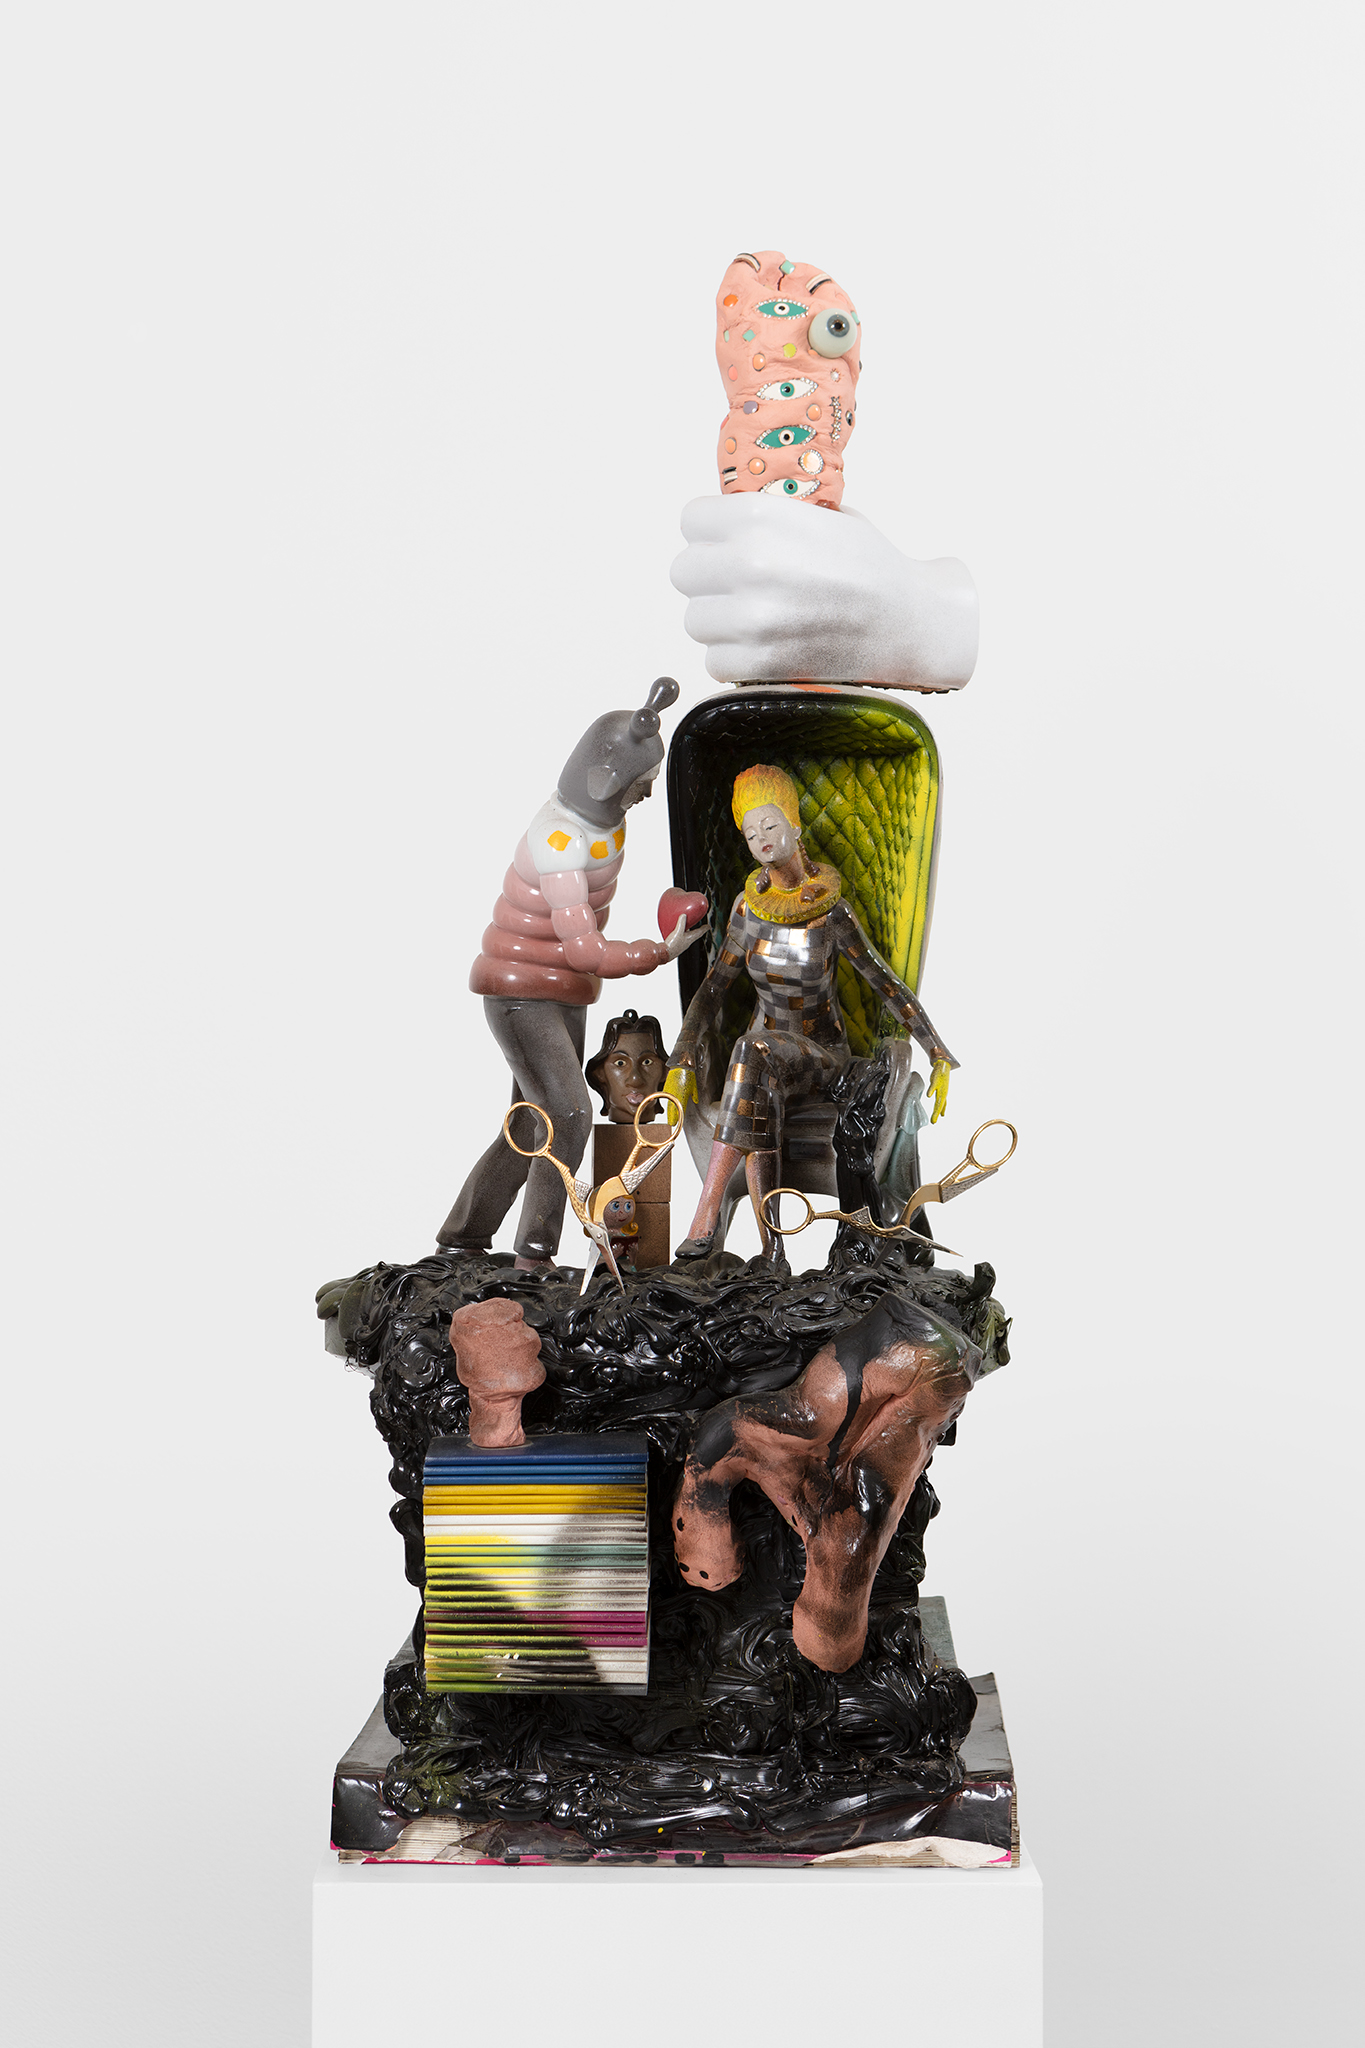 Yngve Benum, Tongue-in-cheek, 2015, mixed media sculpture, 82 x 40 x 36 cm